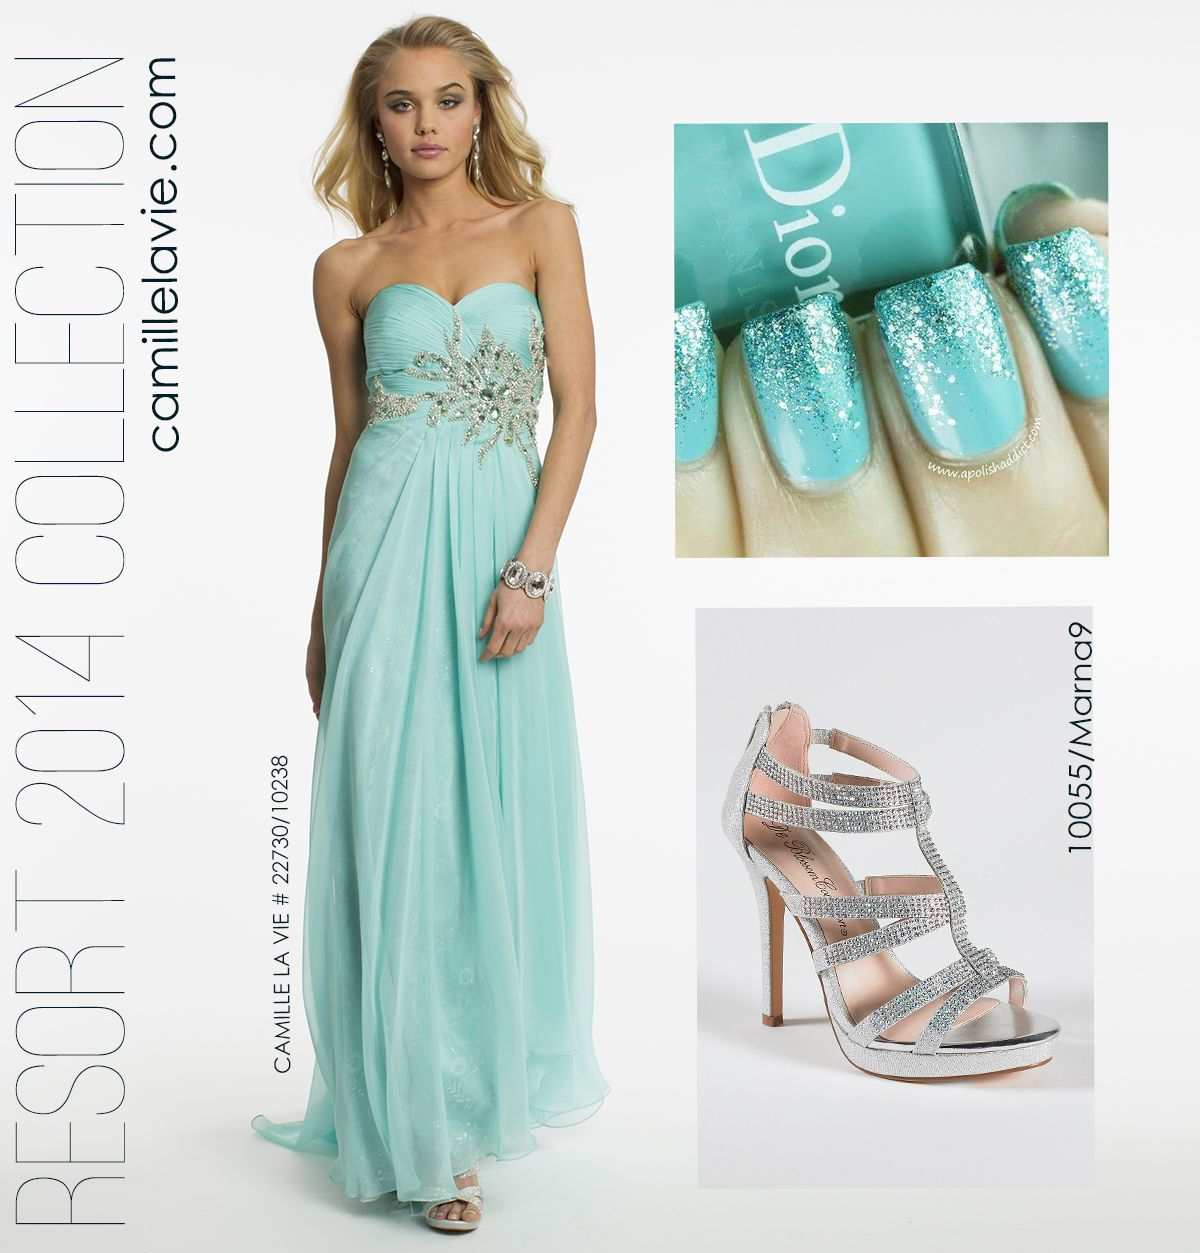 Chiffon and Lace Strapless Aqua Prom Dress by Camille La Vie | PROM ...